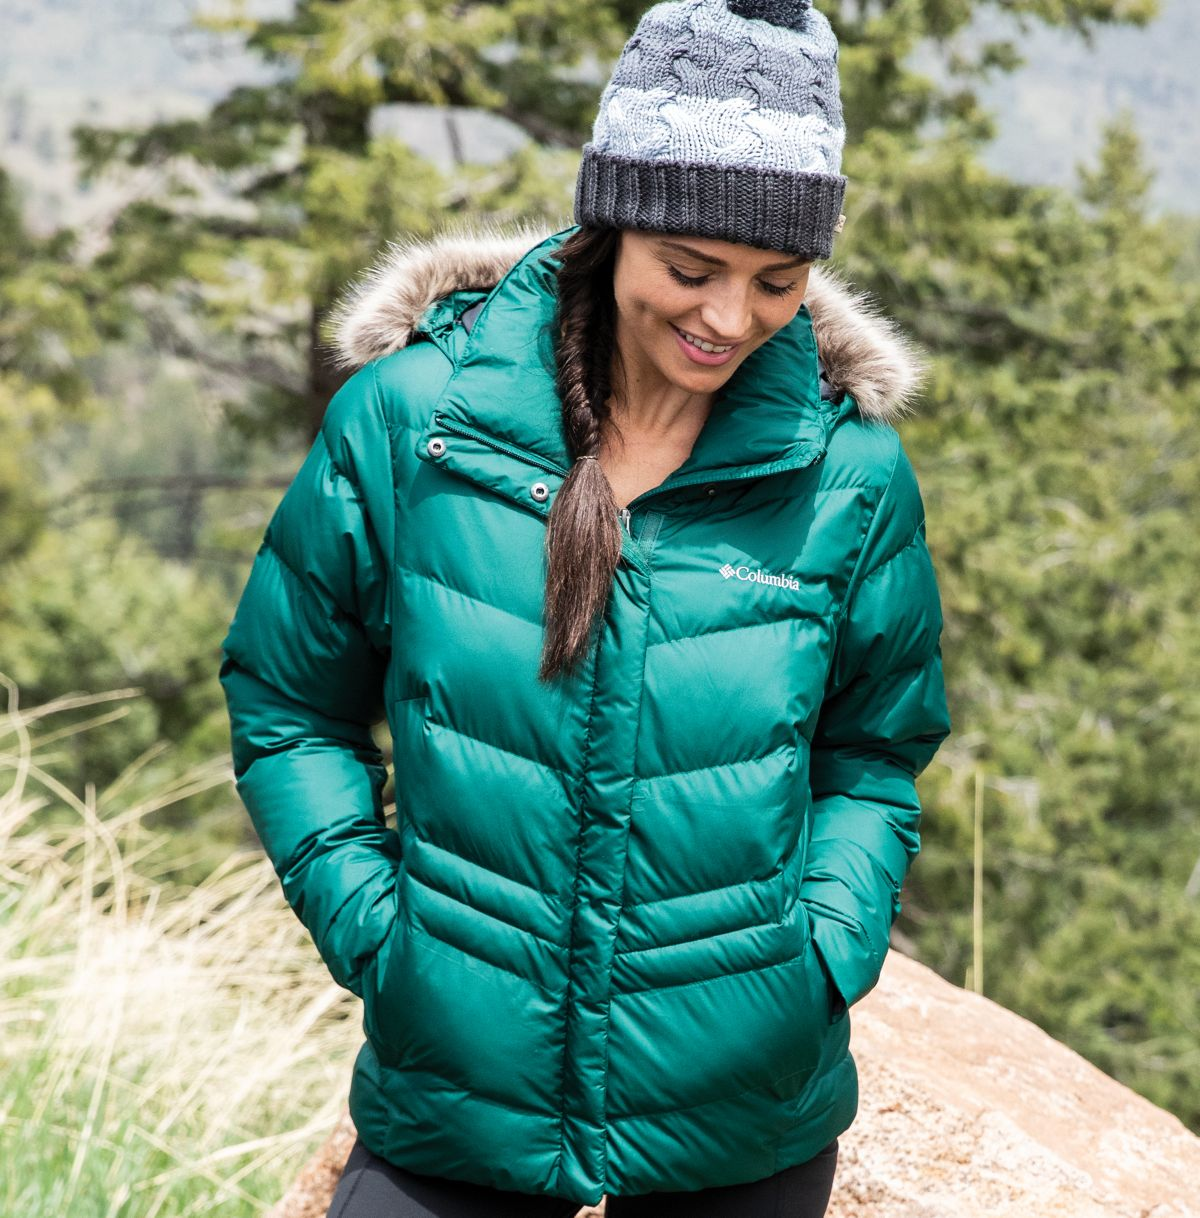 68df65e11f9 Dick s Sporting Goods  Columbia Women s Peak to Park Insulated Jackets –  HALF OFF + Free Shipping!